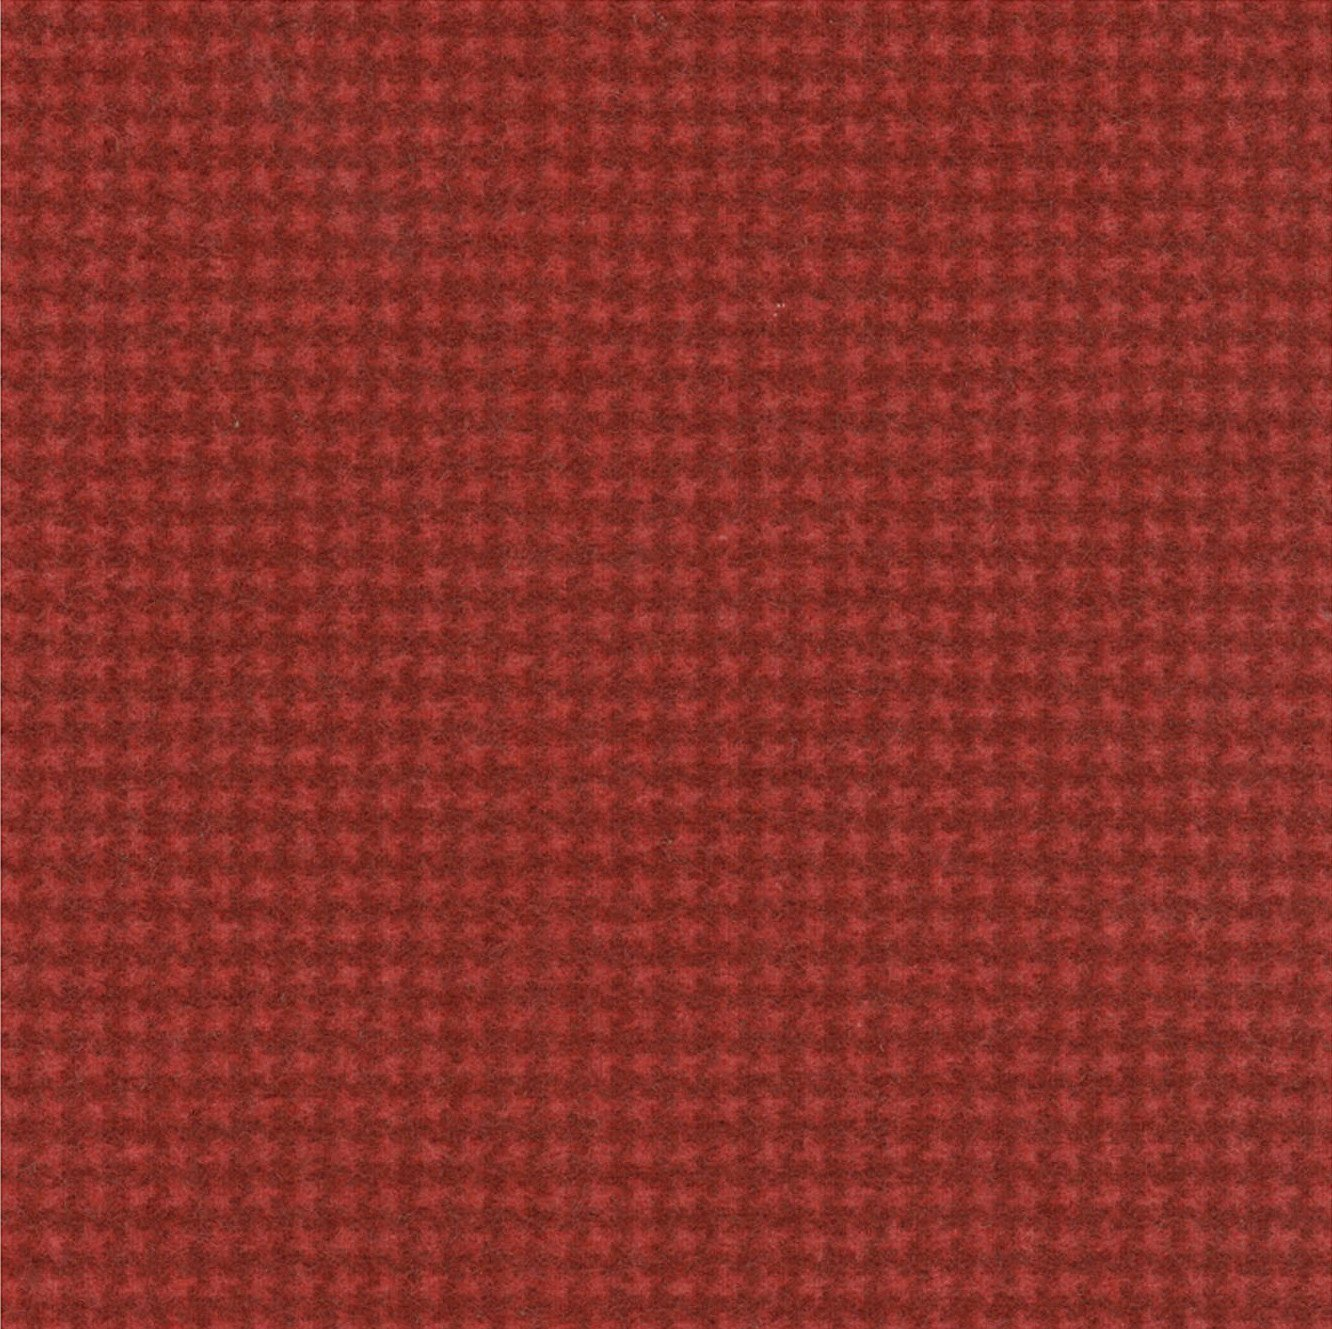 Woolies Flannel Tiny Houndstooth Bright Red (MASF18122-R2)